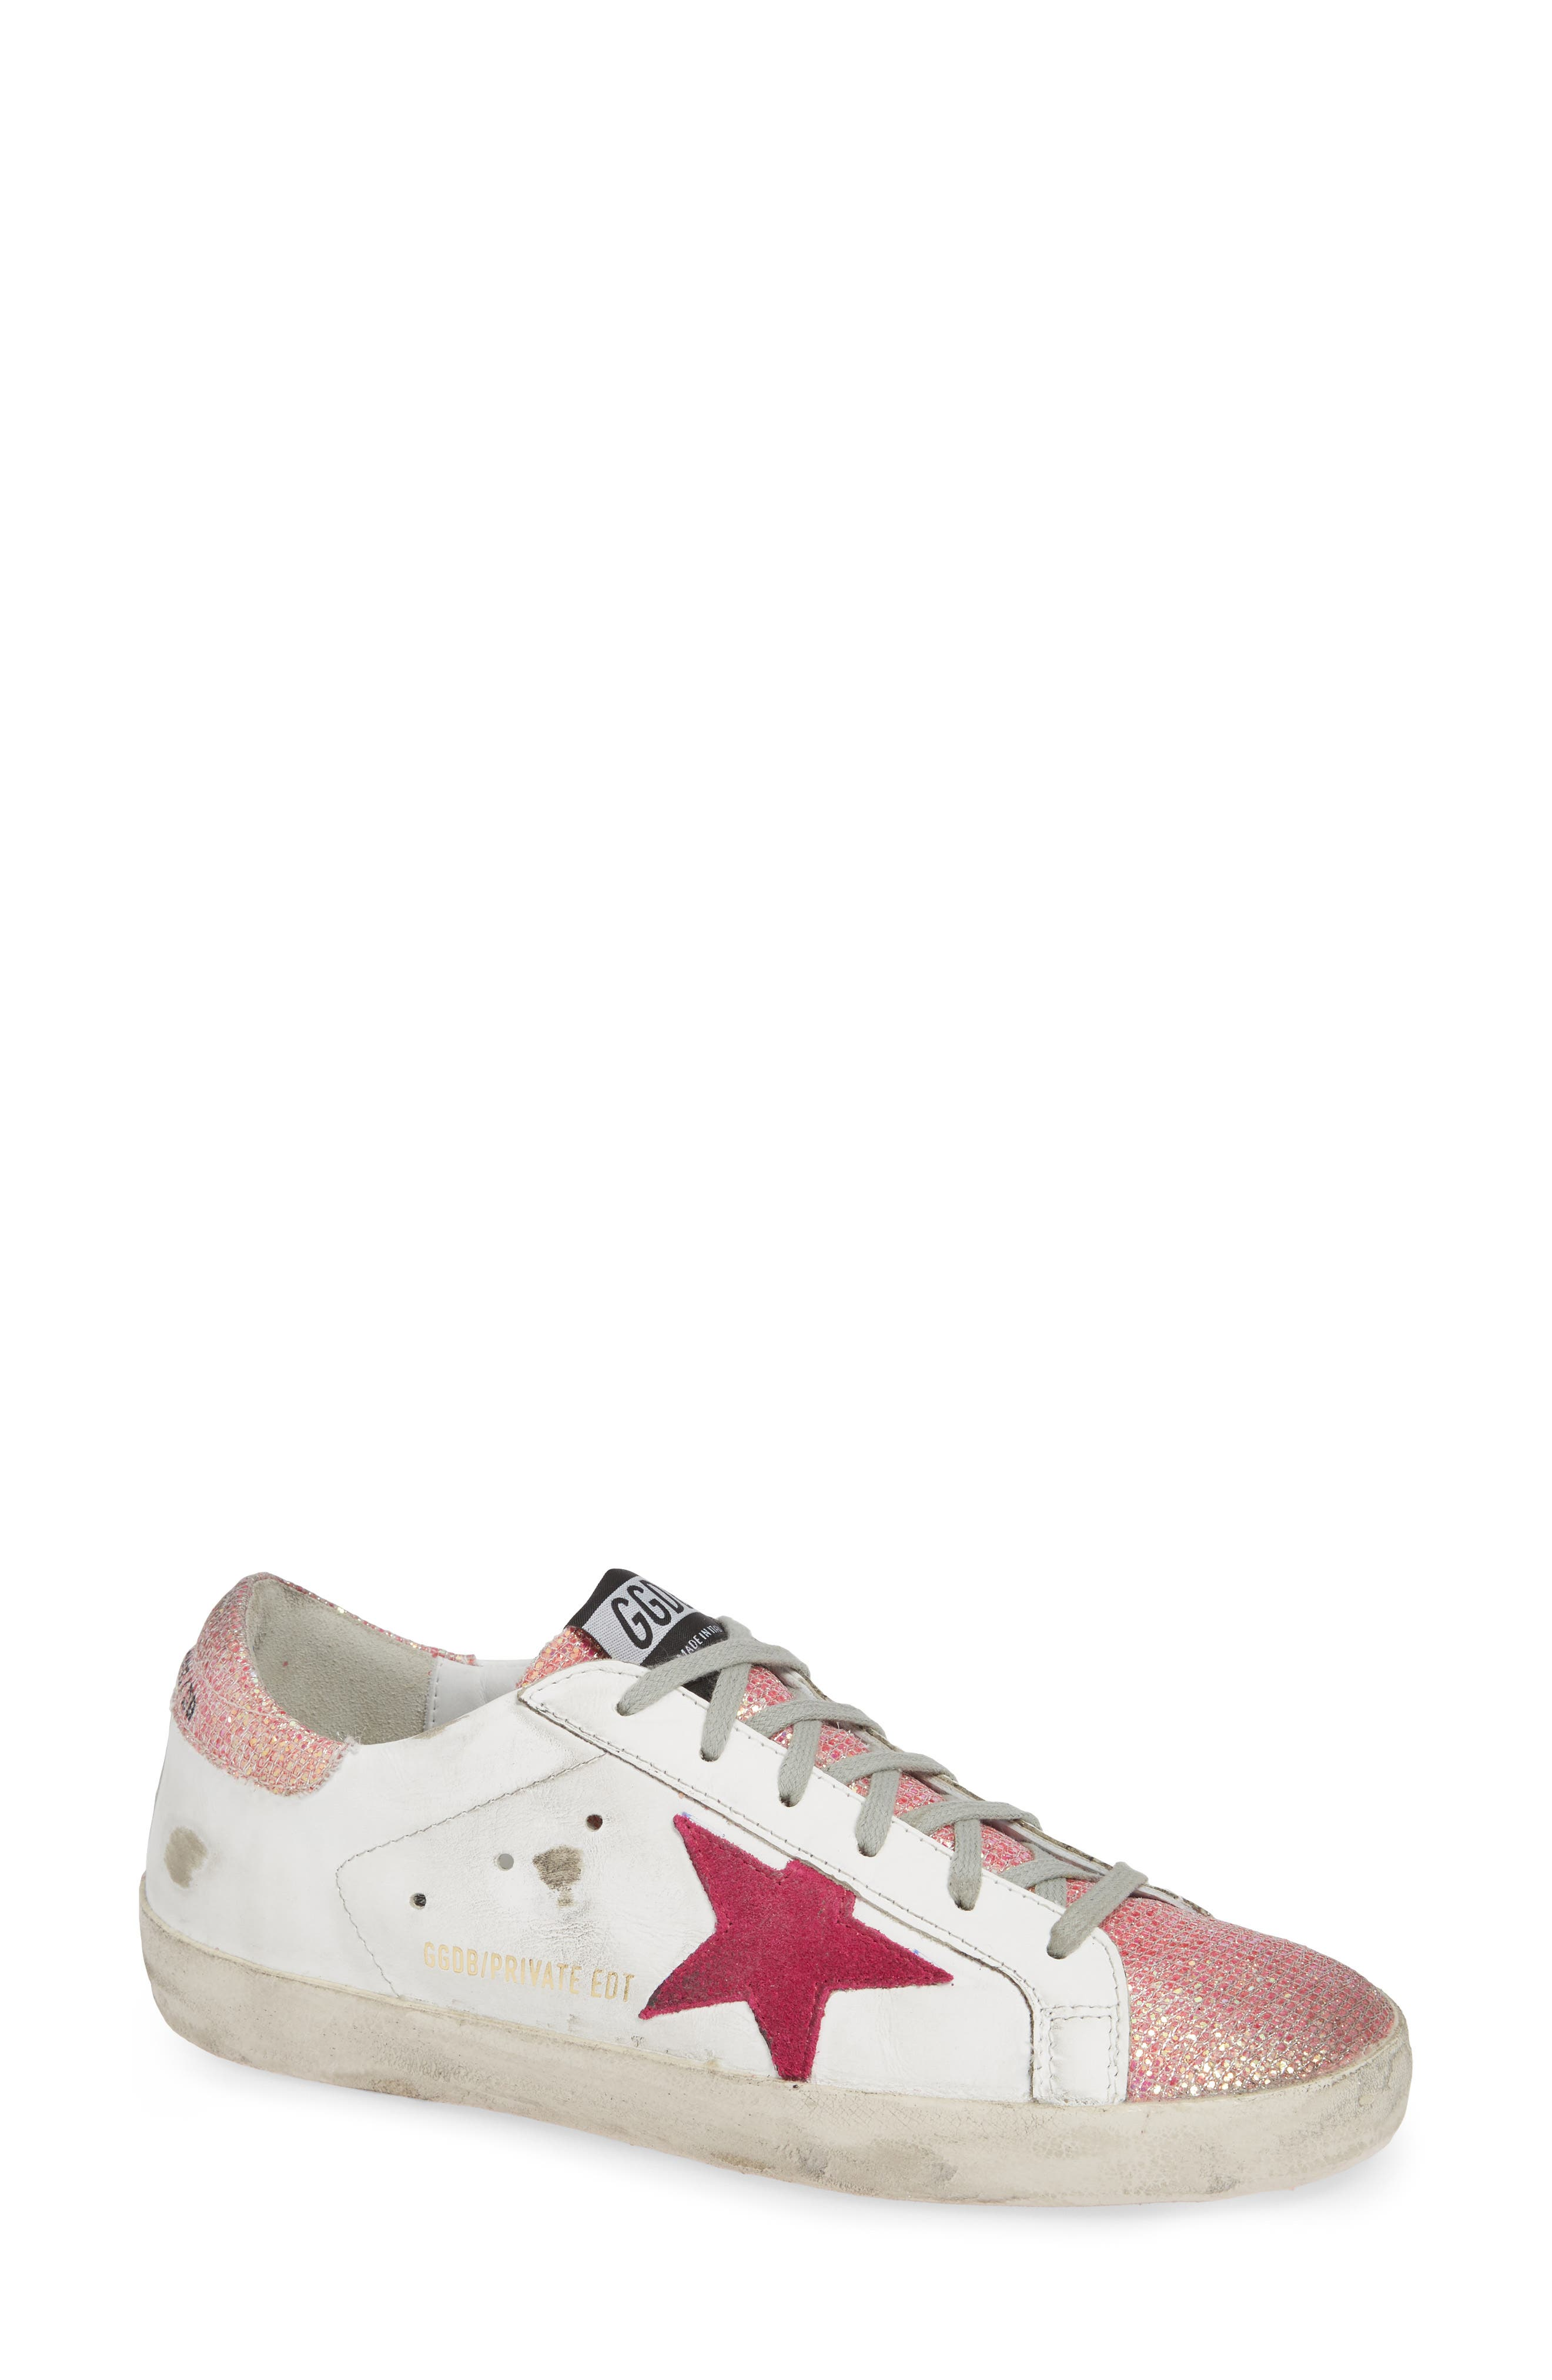 Superstar Sneaker,                             Main thumbnail 1, color,                             WHITE/ PINK